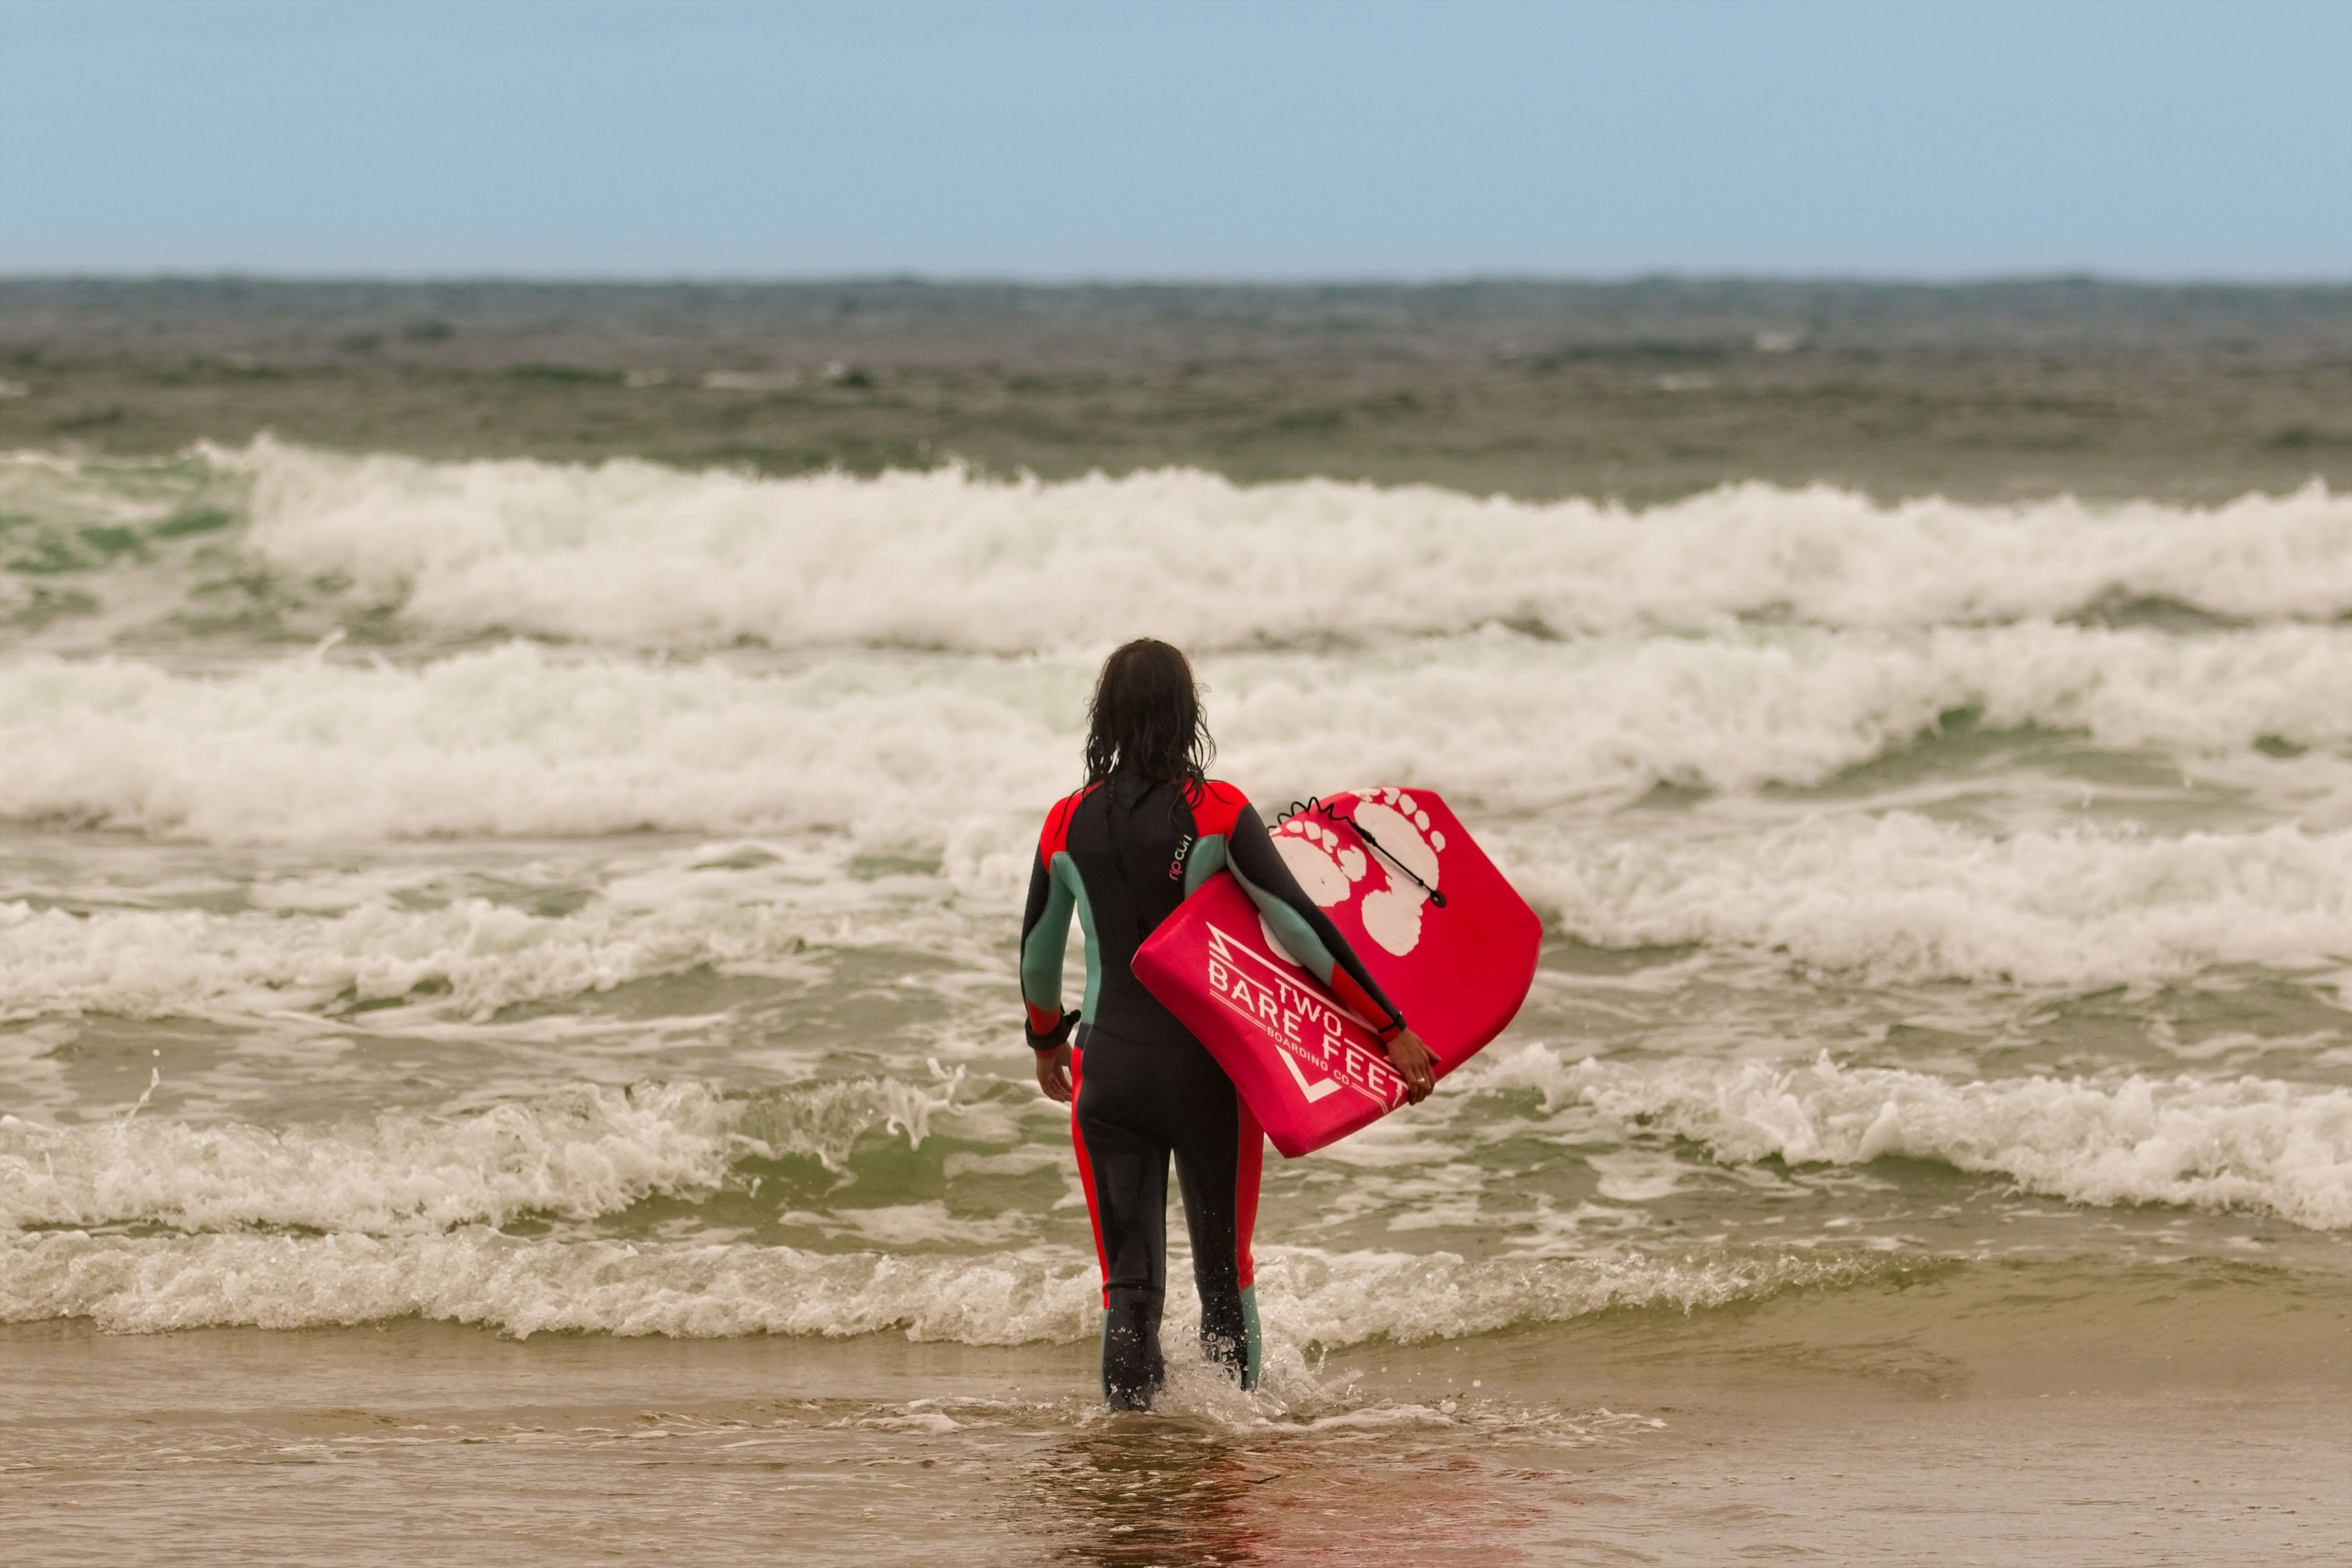 Person Standing on Sea Shore Holding Body Board